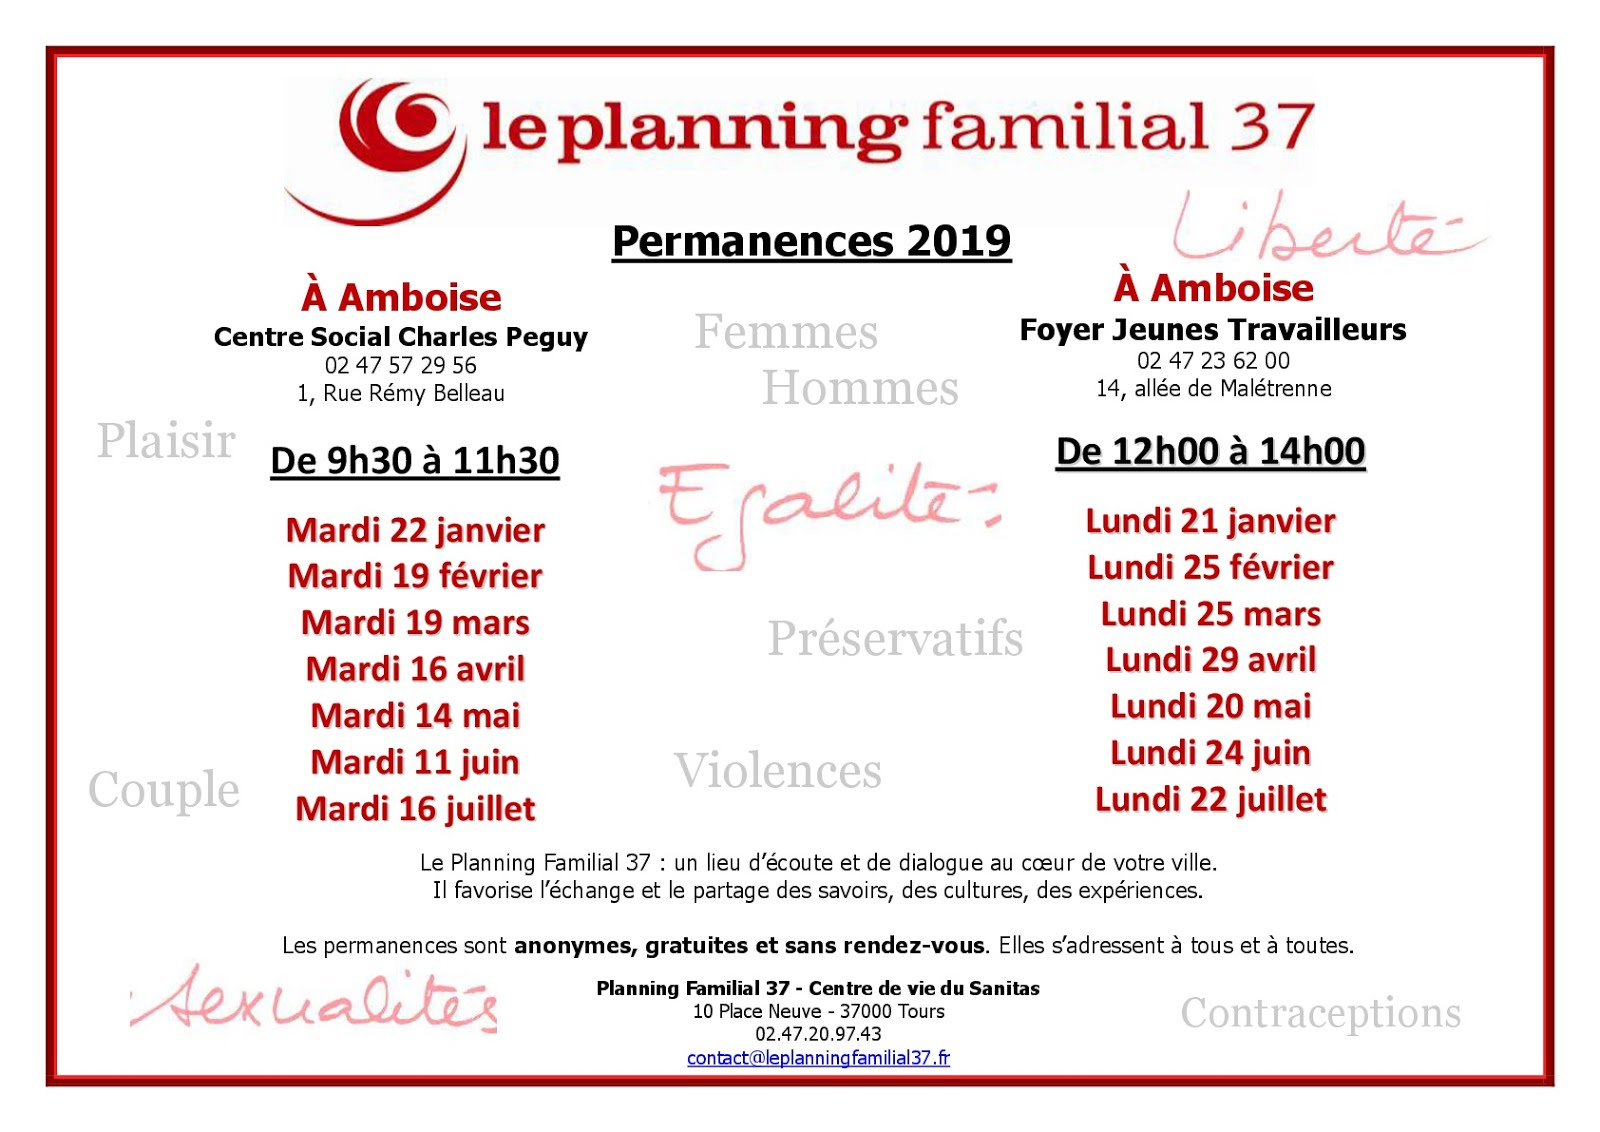 PERMANENCES 2019 PLANNING FAMILIAL 37